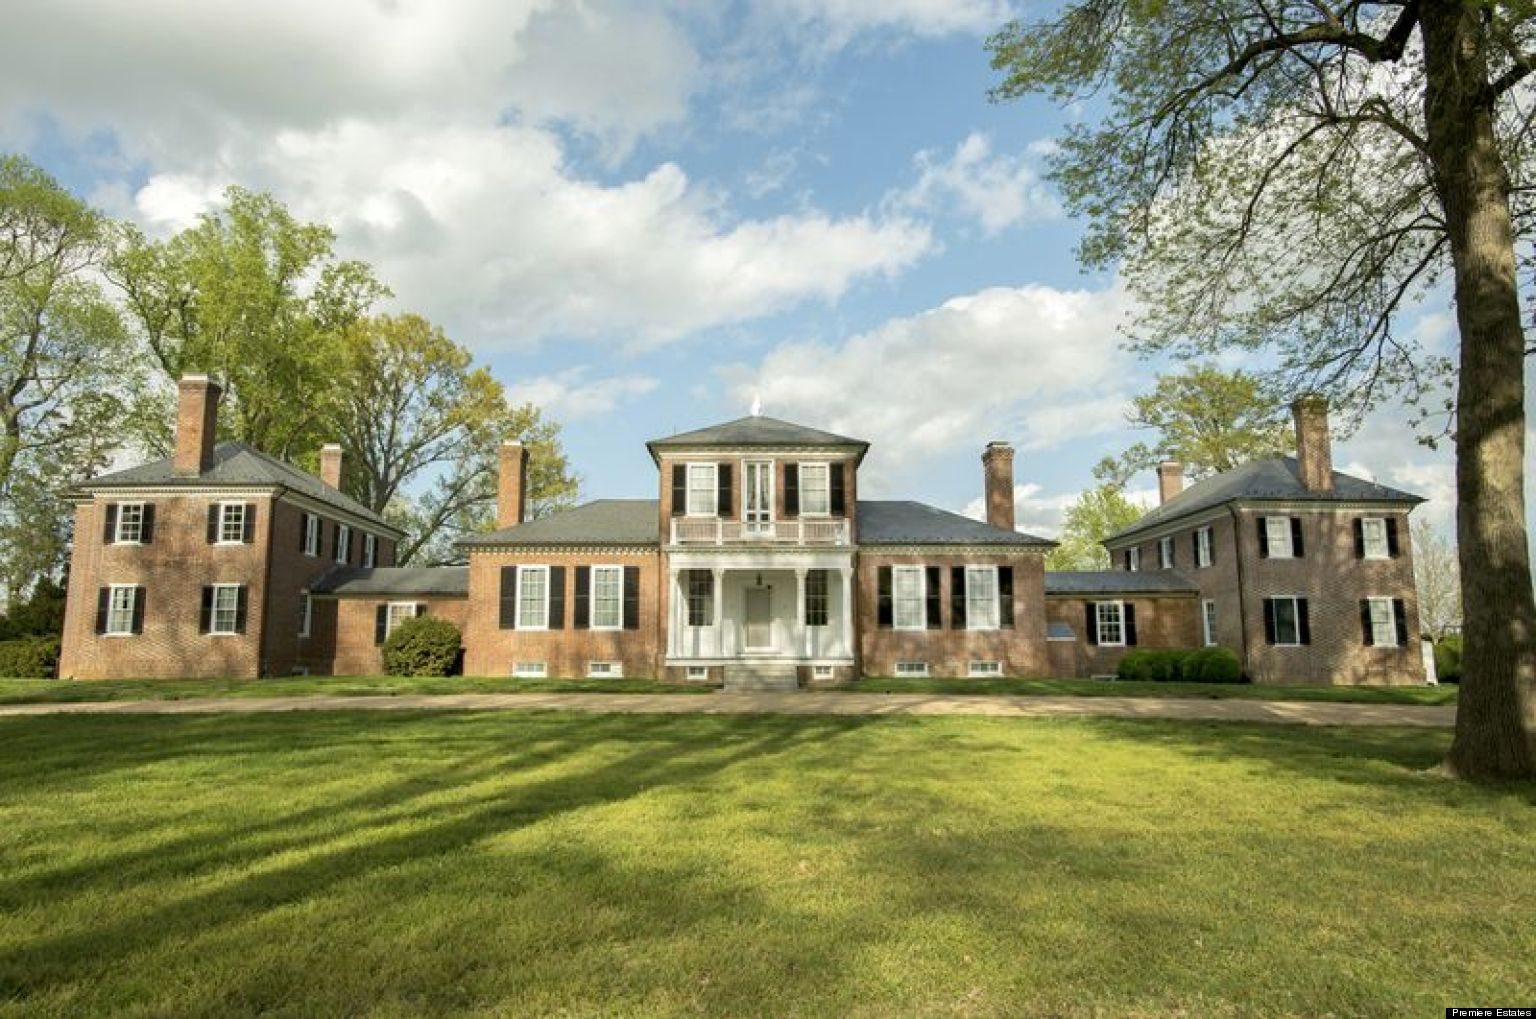 For Sale: 18th Century Plantation Designed By Thomas Jefferson